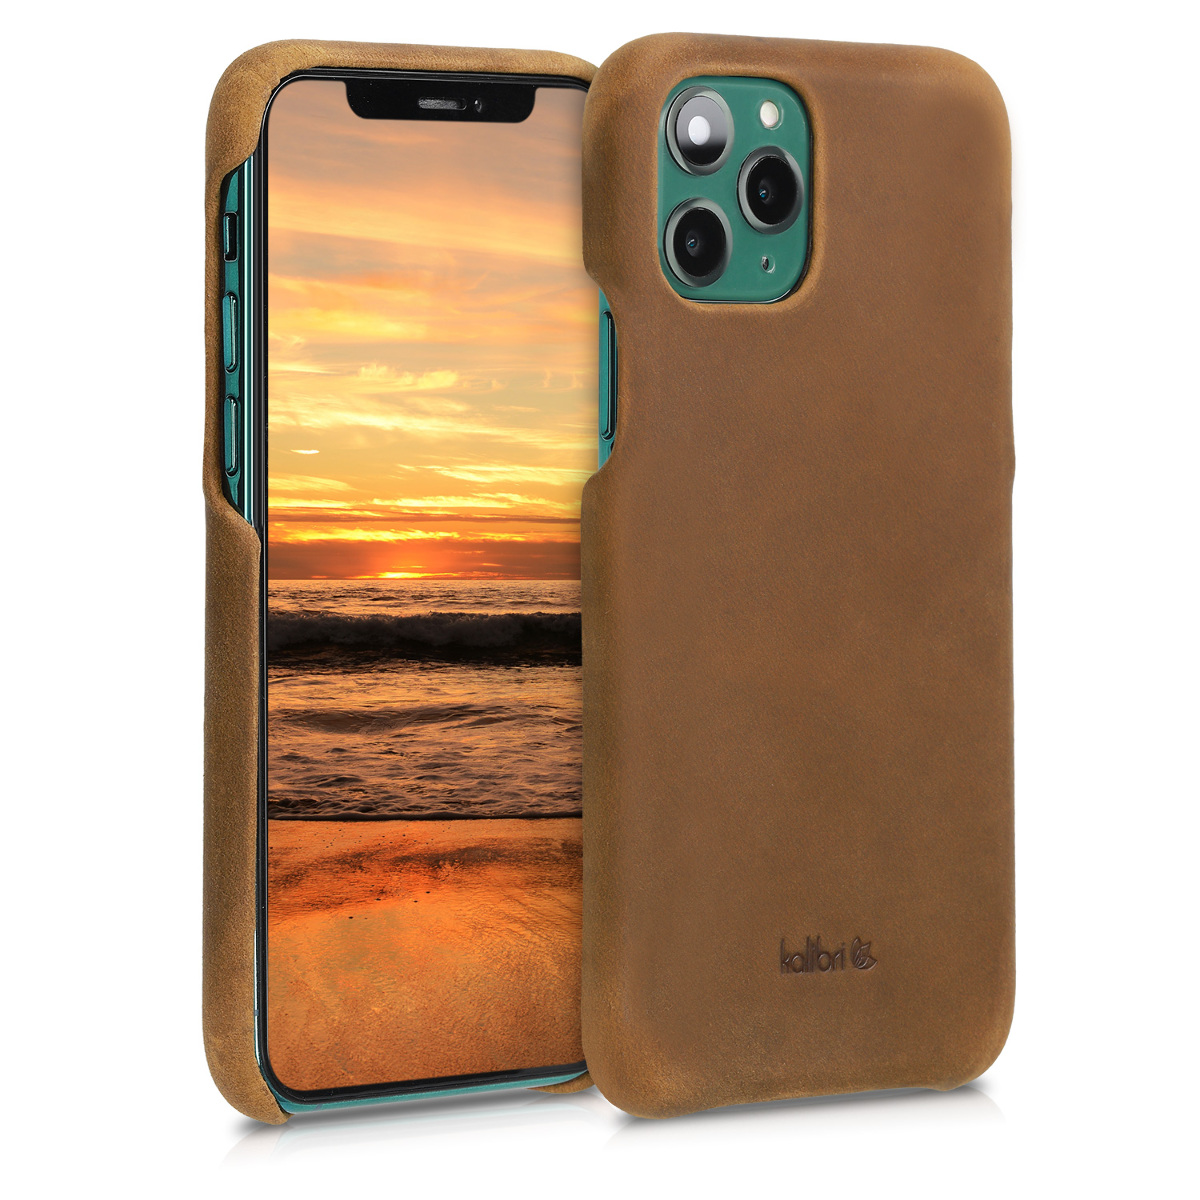 Kalibri Σκληρή Δερμάτινη Θήκη iPhone 11 Pro - Smooth Genuine Leather Hard Case - Light Brown (49736.24)